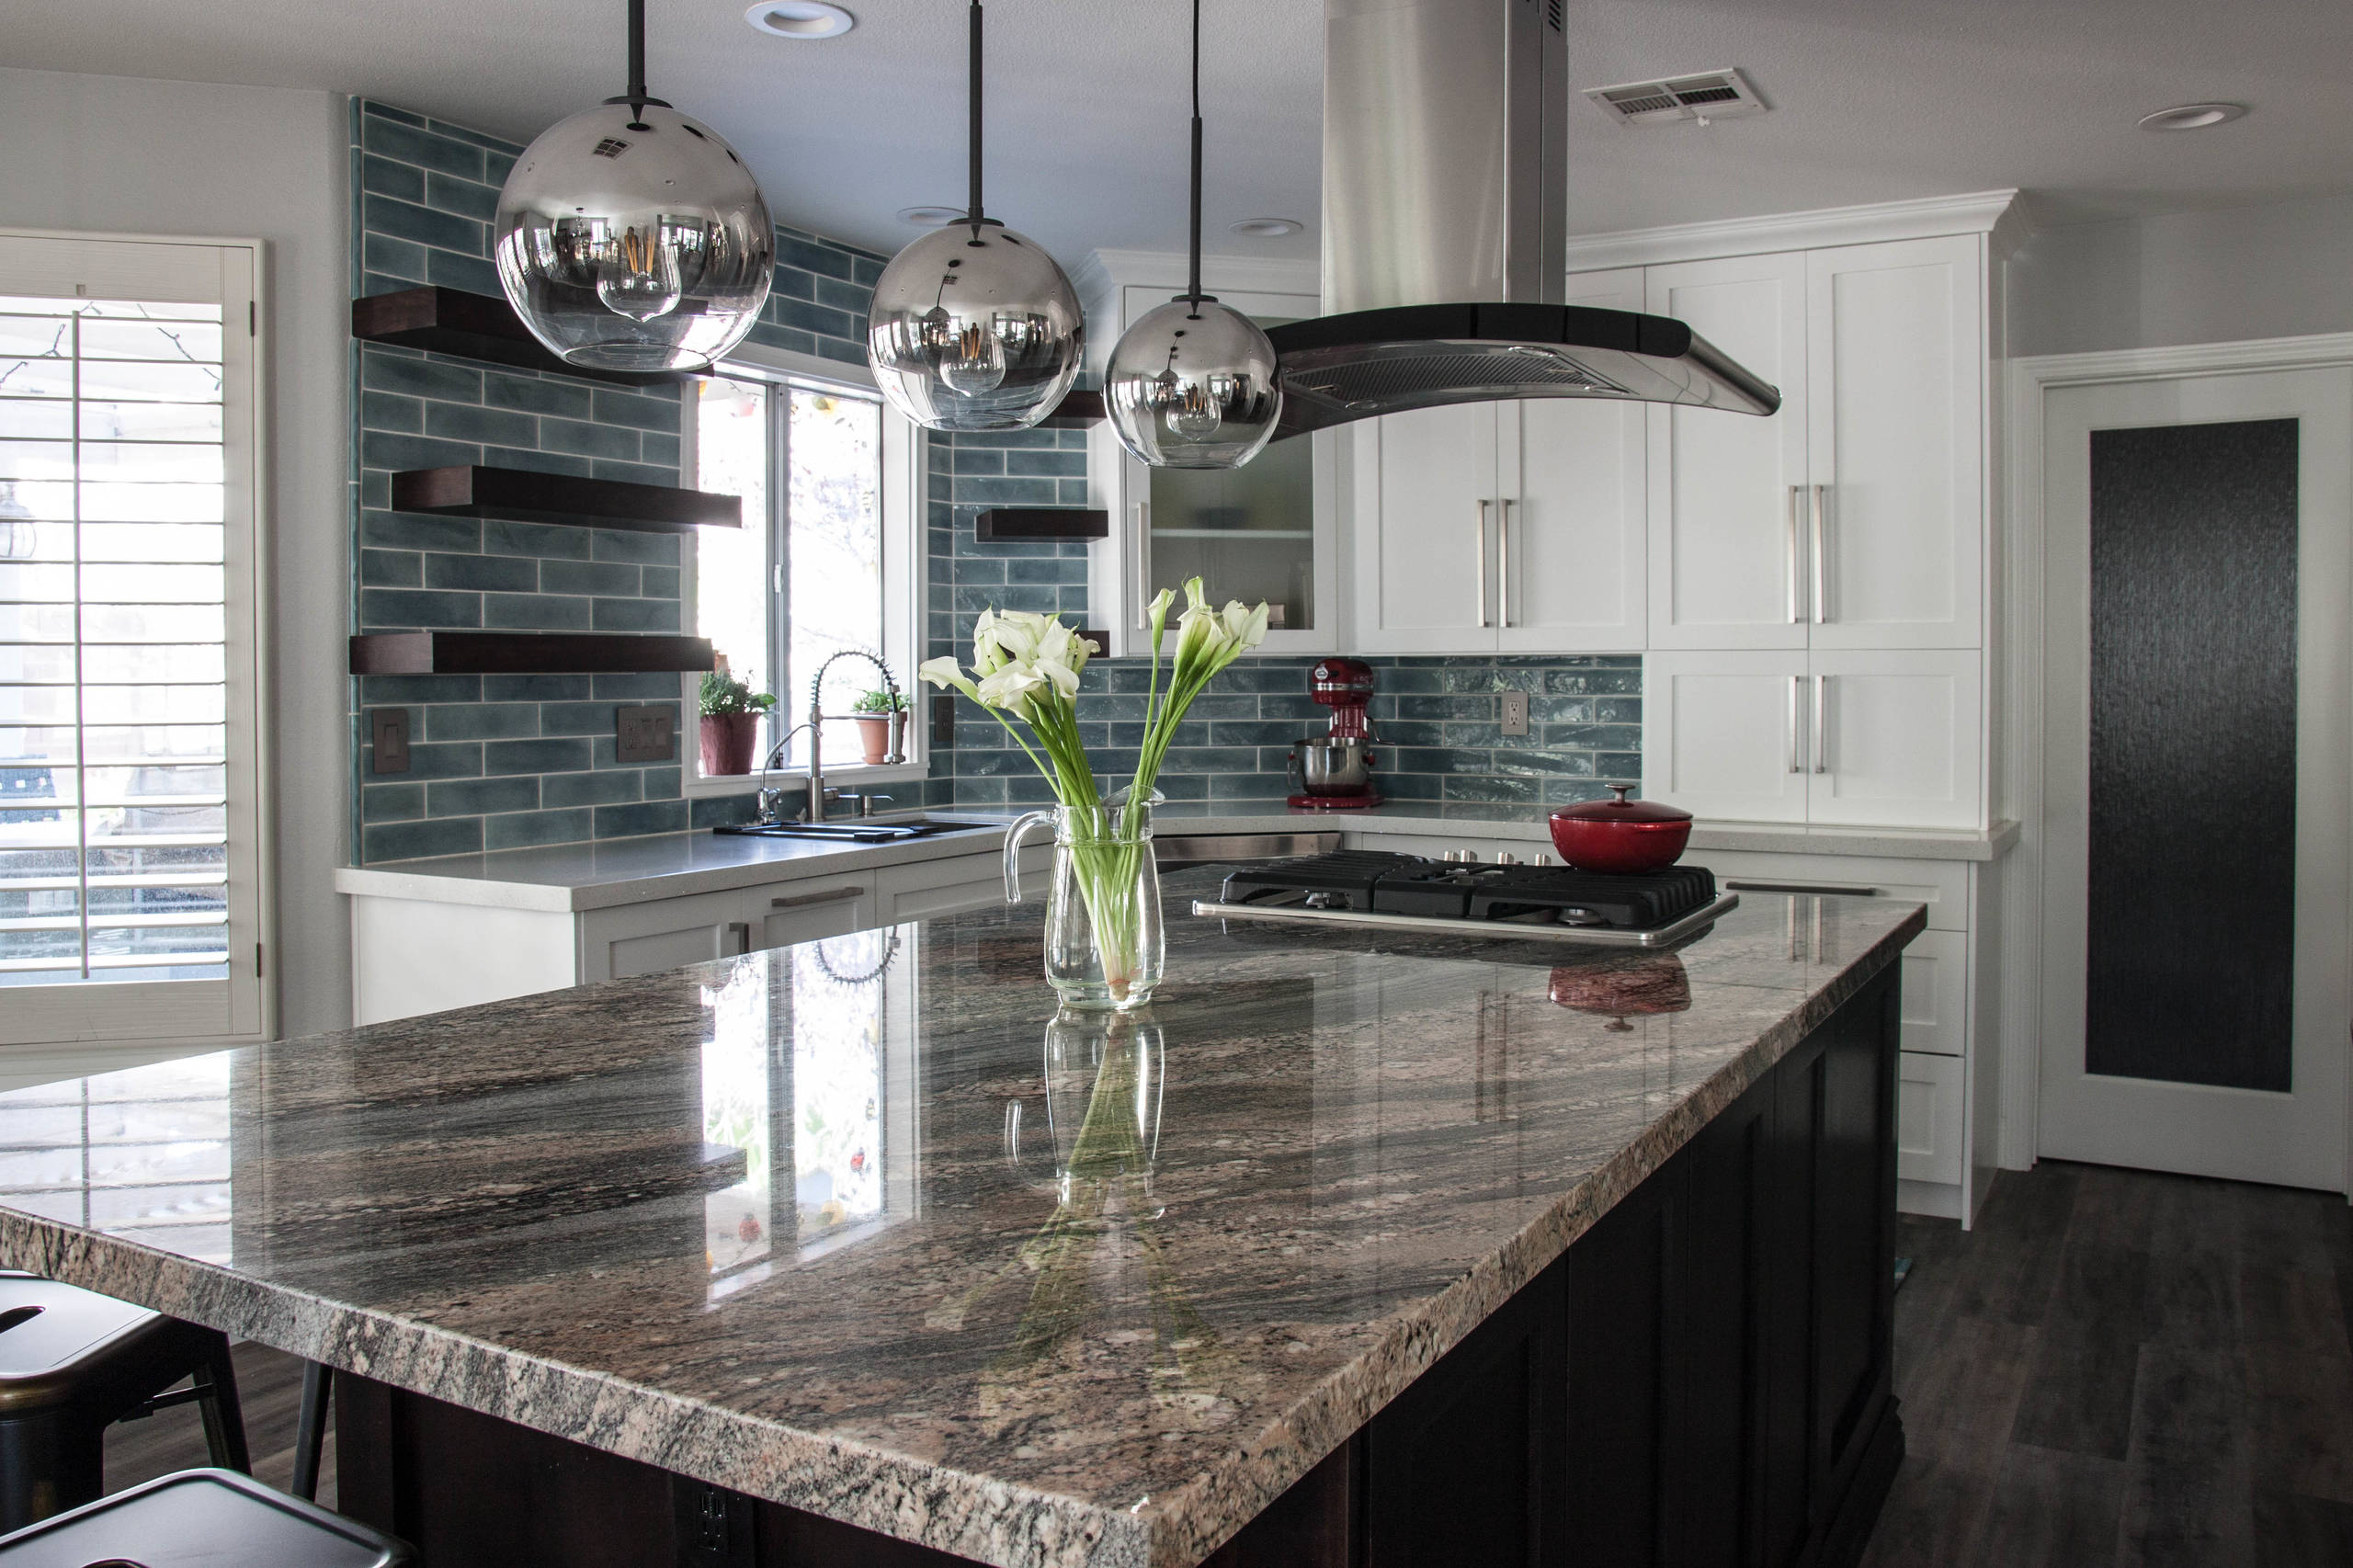 Summerlin Kitchen and Dining Room Renovation Project